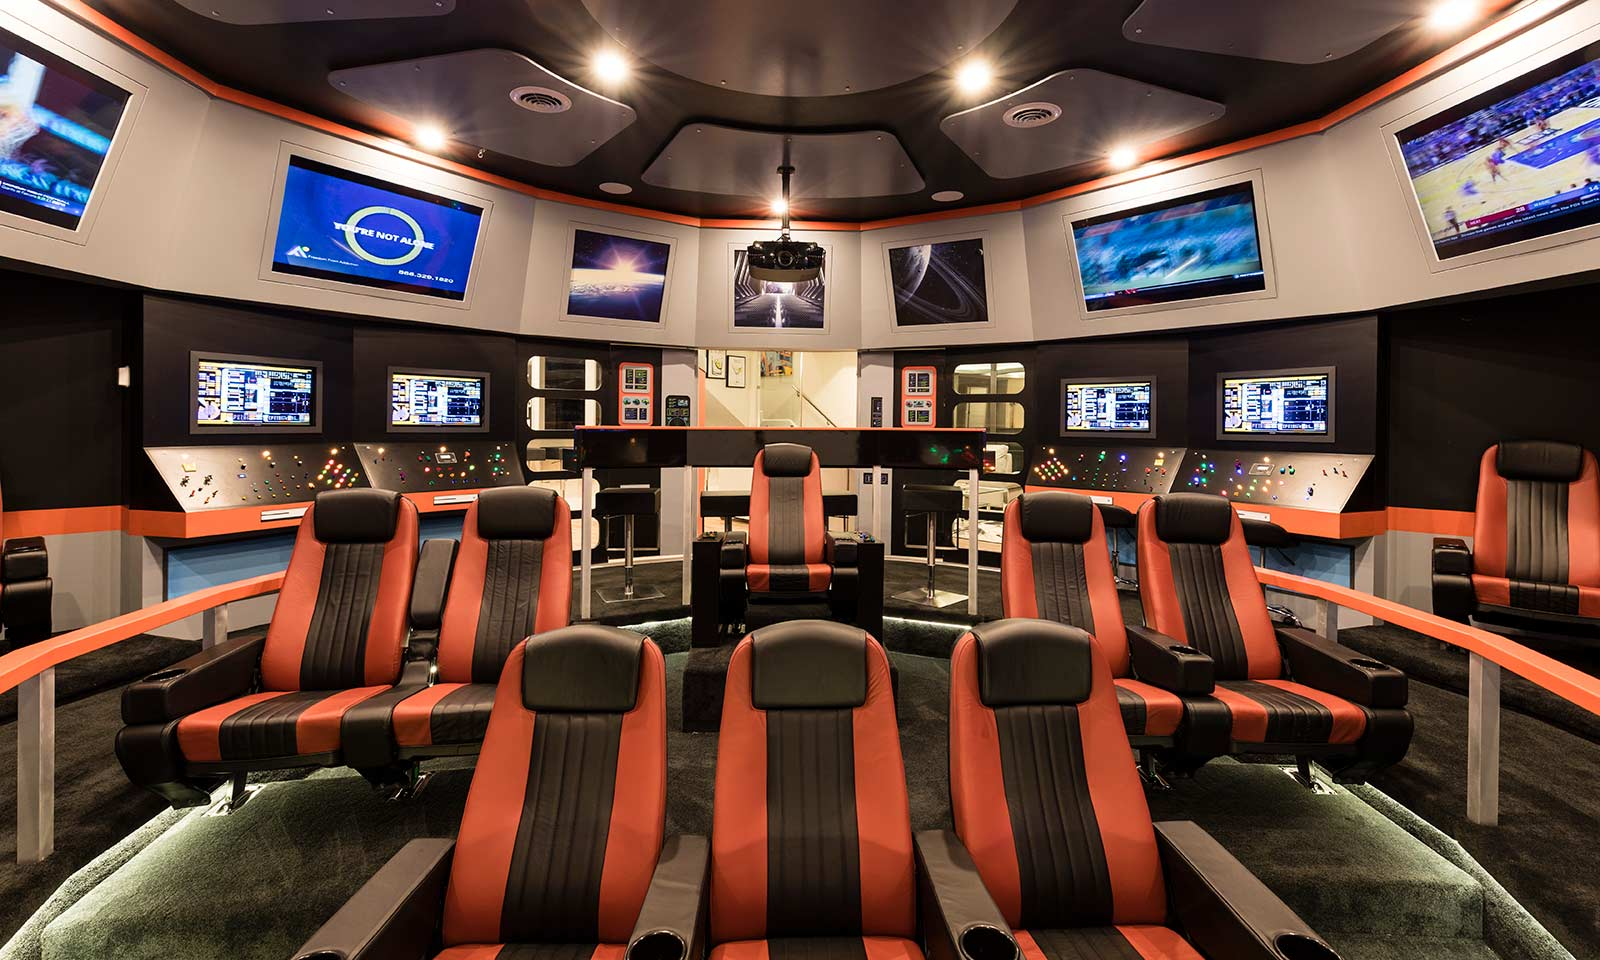 [amenities:Home-Theater:3] Home Theater